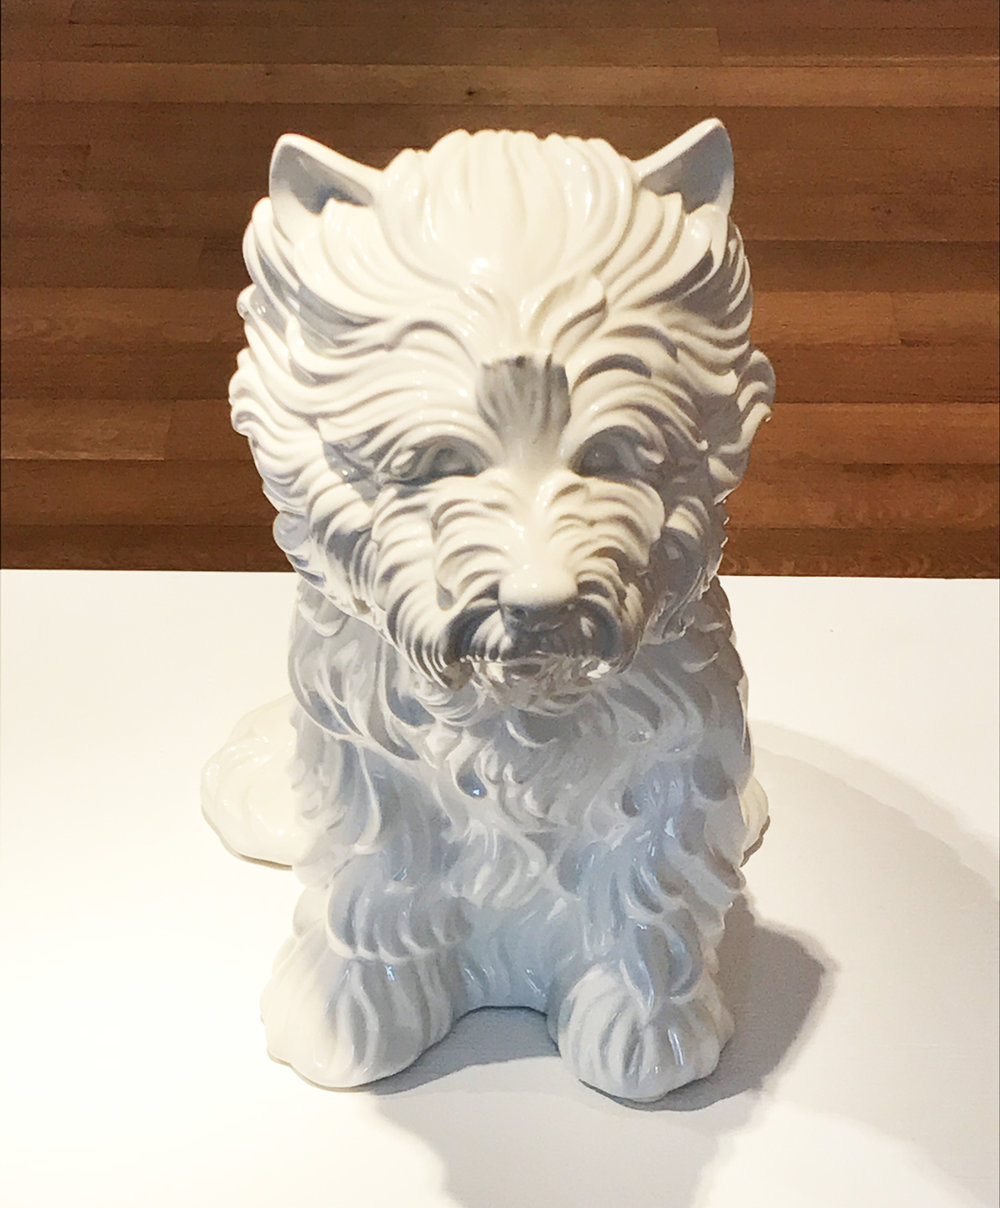 15.	Jeff Koons. Puppy (Vase), 1998. White glazed porcelain, ed. 1817/3000, 17 ½ x 17 ½ x 10 ½ in.